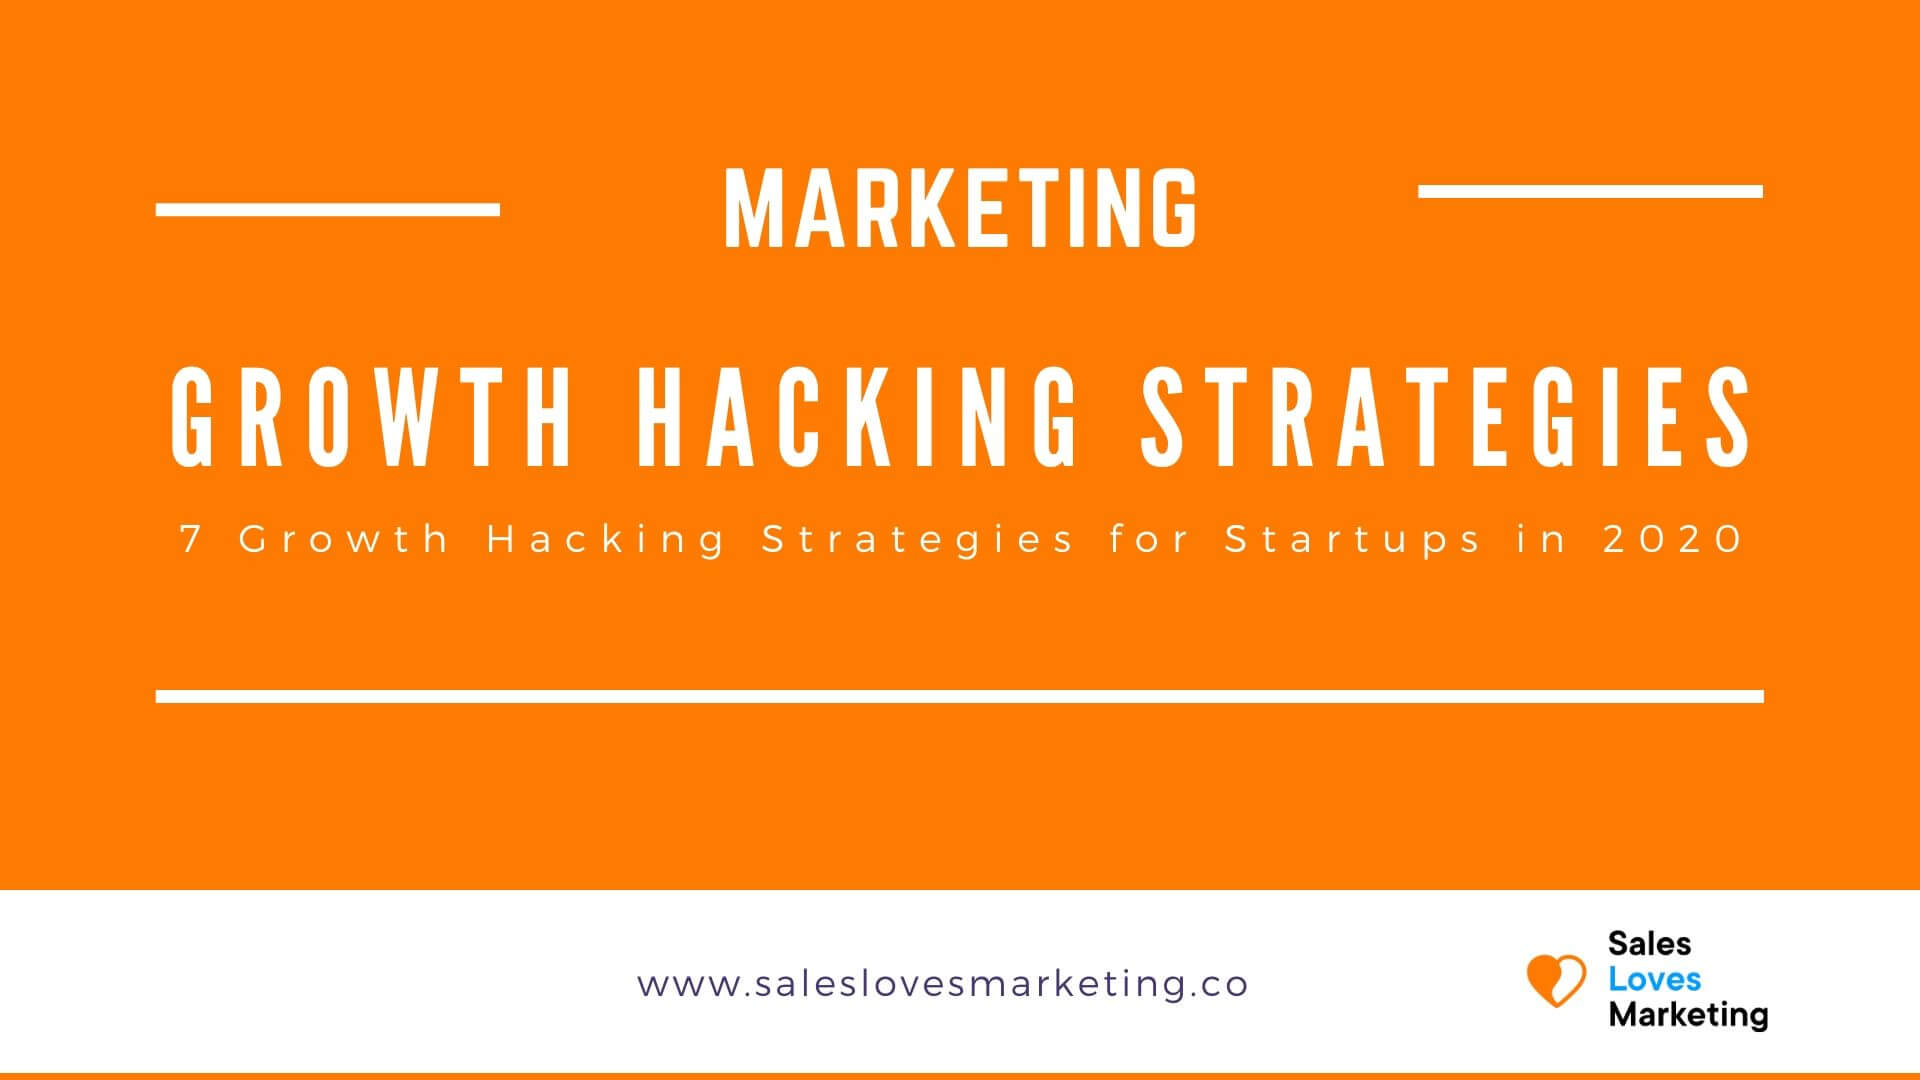 7 growth hacking strategies for startups to grow their business